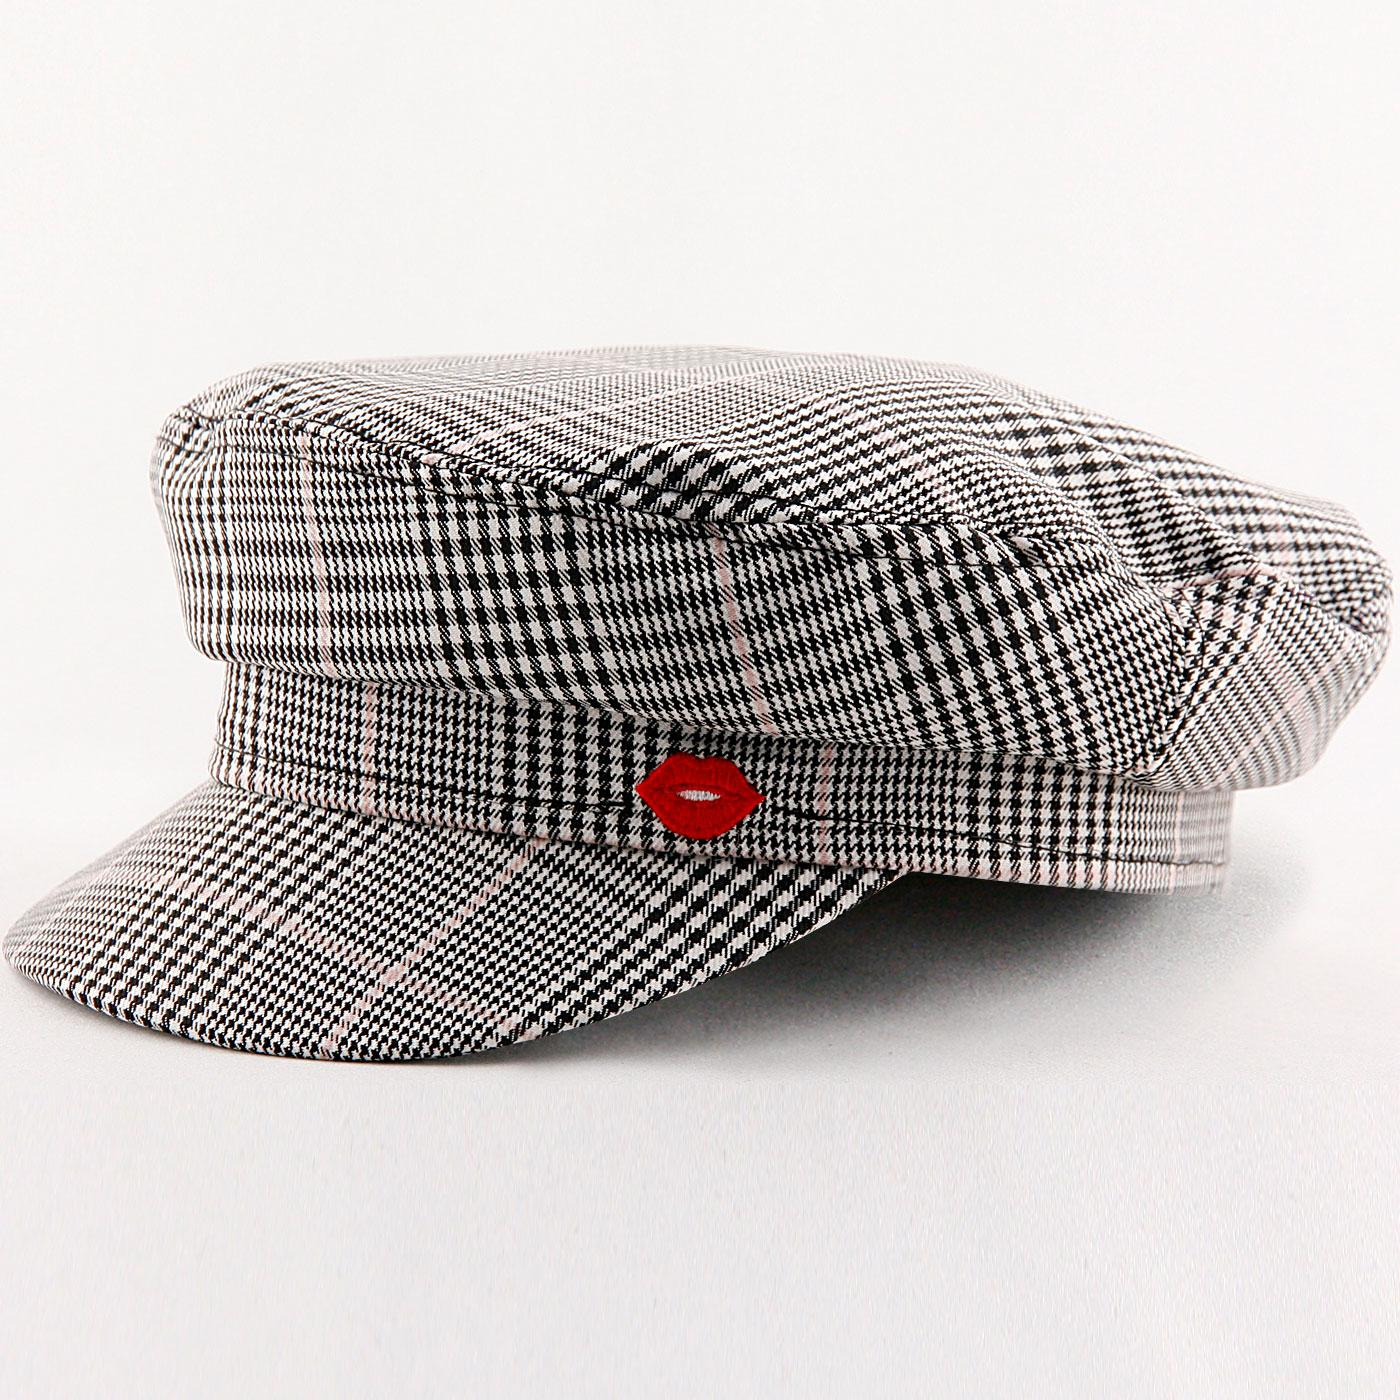 Think A Hat MADEMOISELLE YEYE Mod POW Check Cap